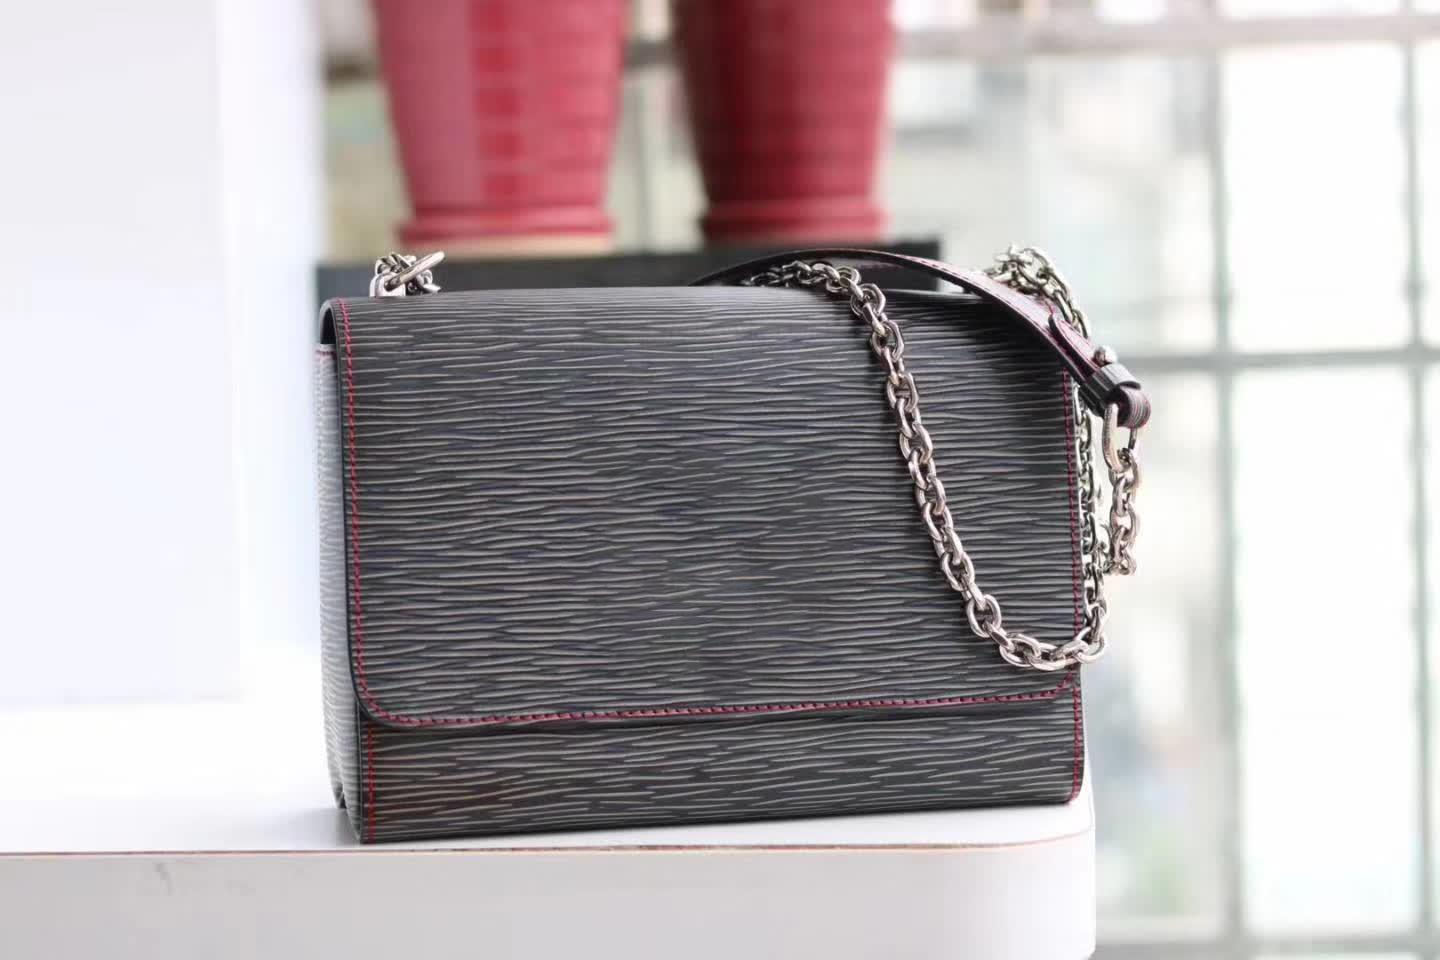 Woman Bag Passport 0088 Luxury Designer Handbags Sac A Main Brand Bags Designer Handbags Branded 143843